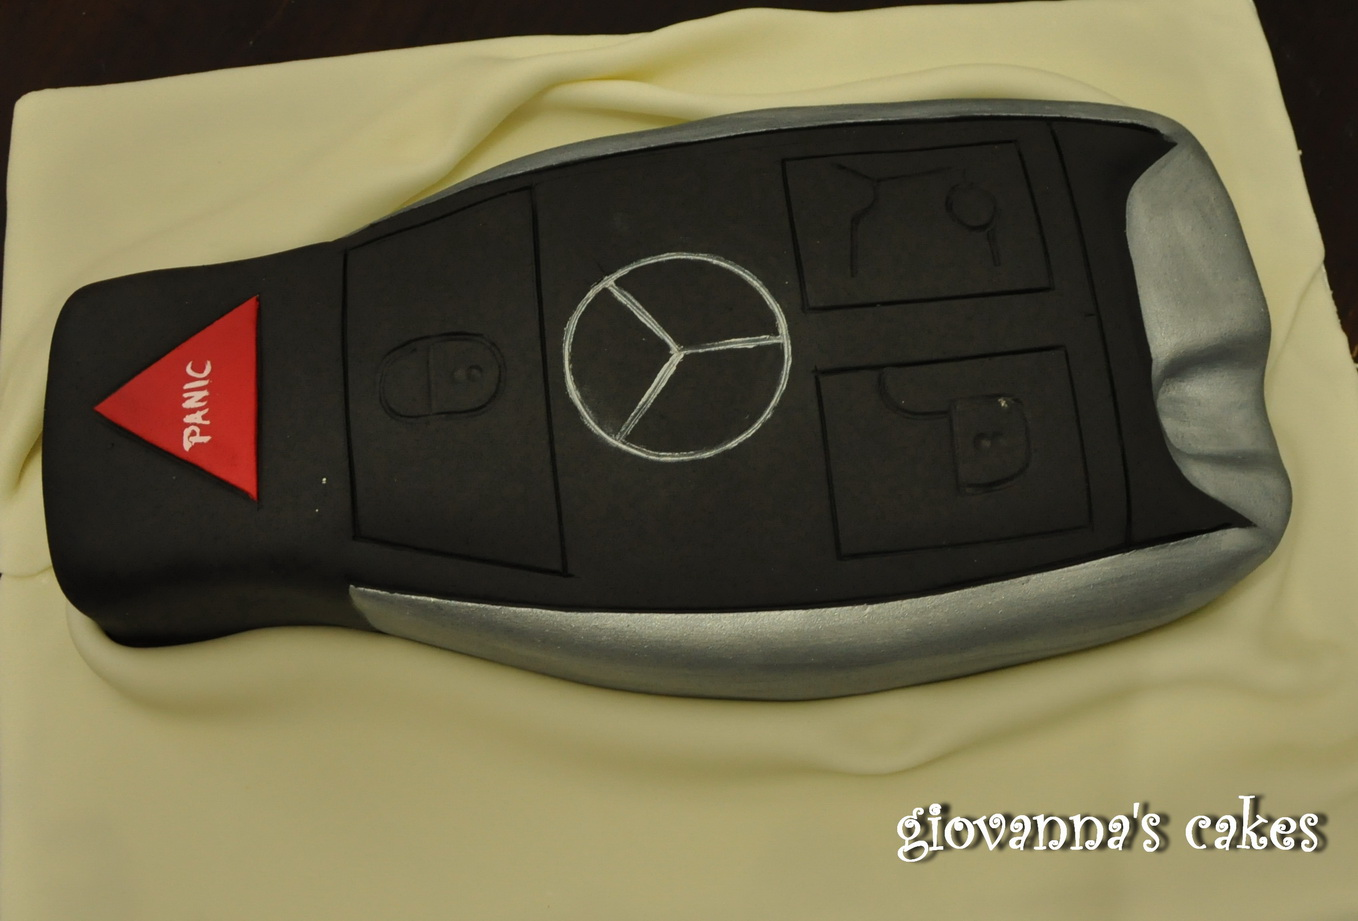 Giovanna 39 s cakes mercedes car key for Mercedes benz cake design